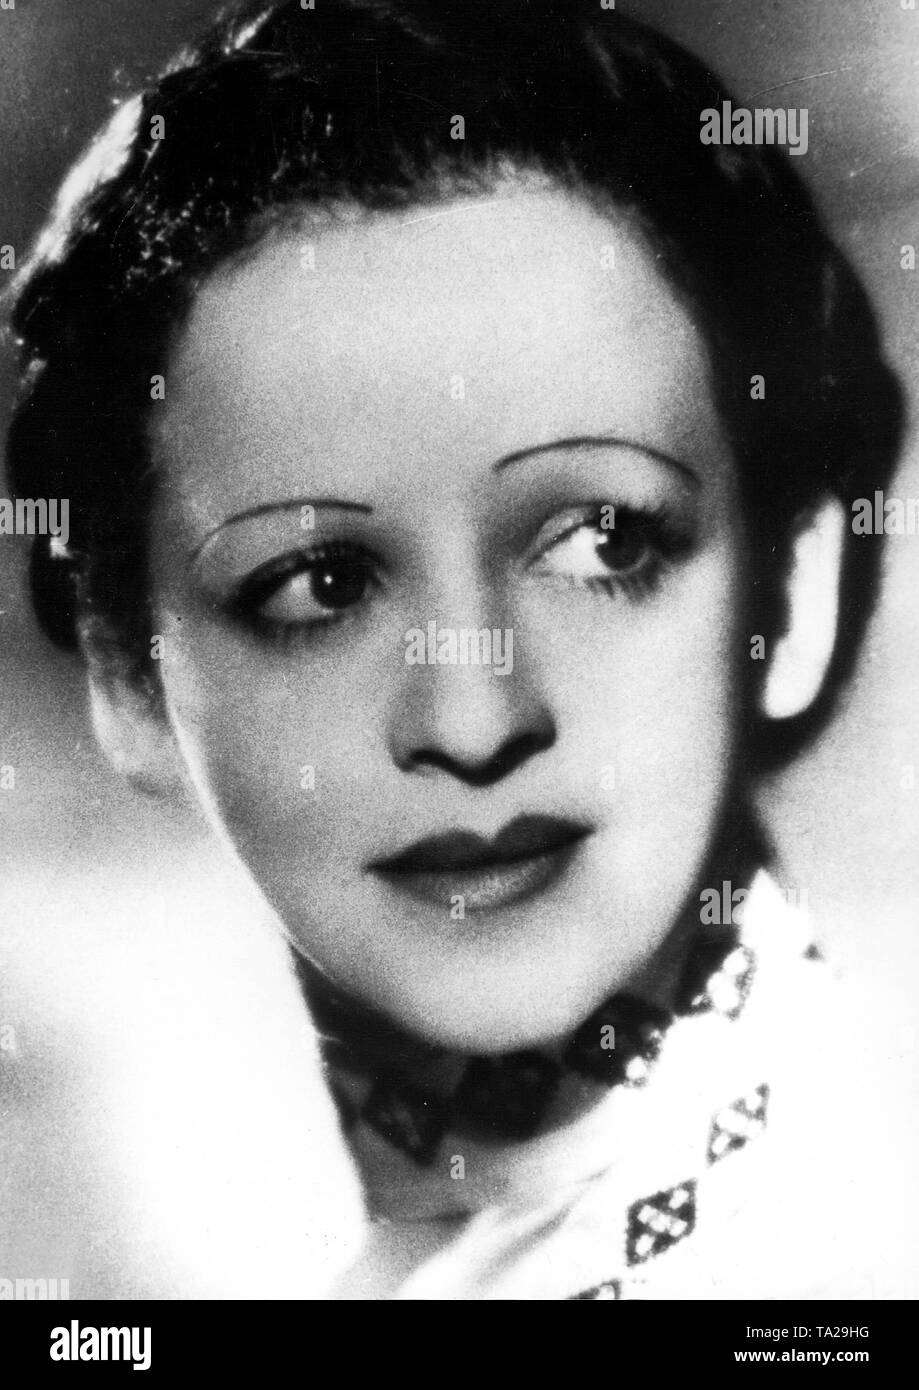 Singer 1930s Stock Photos & Singer 1930s Stock Images - Alamy